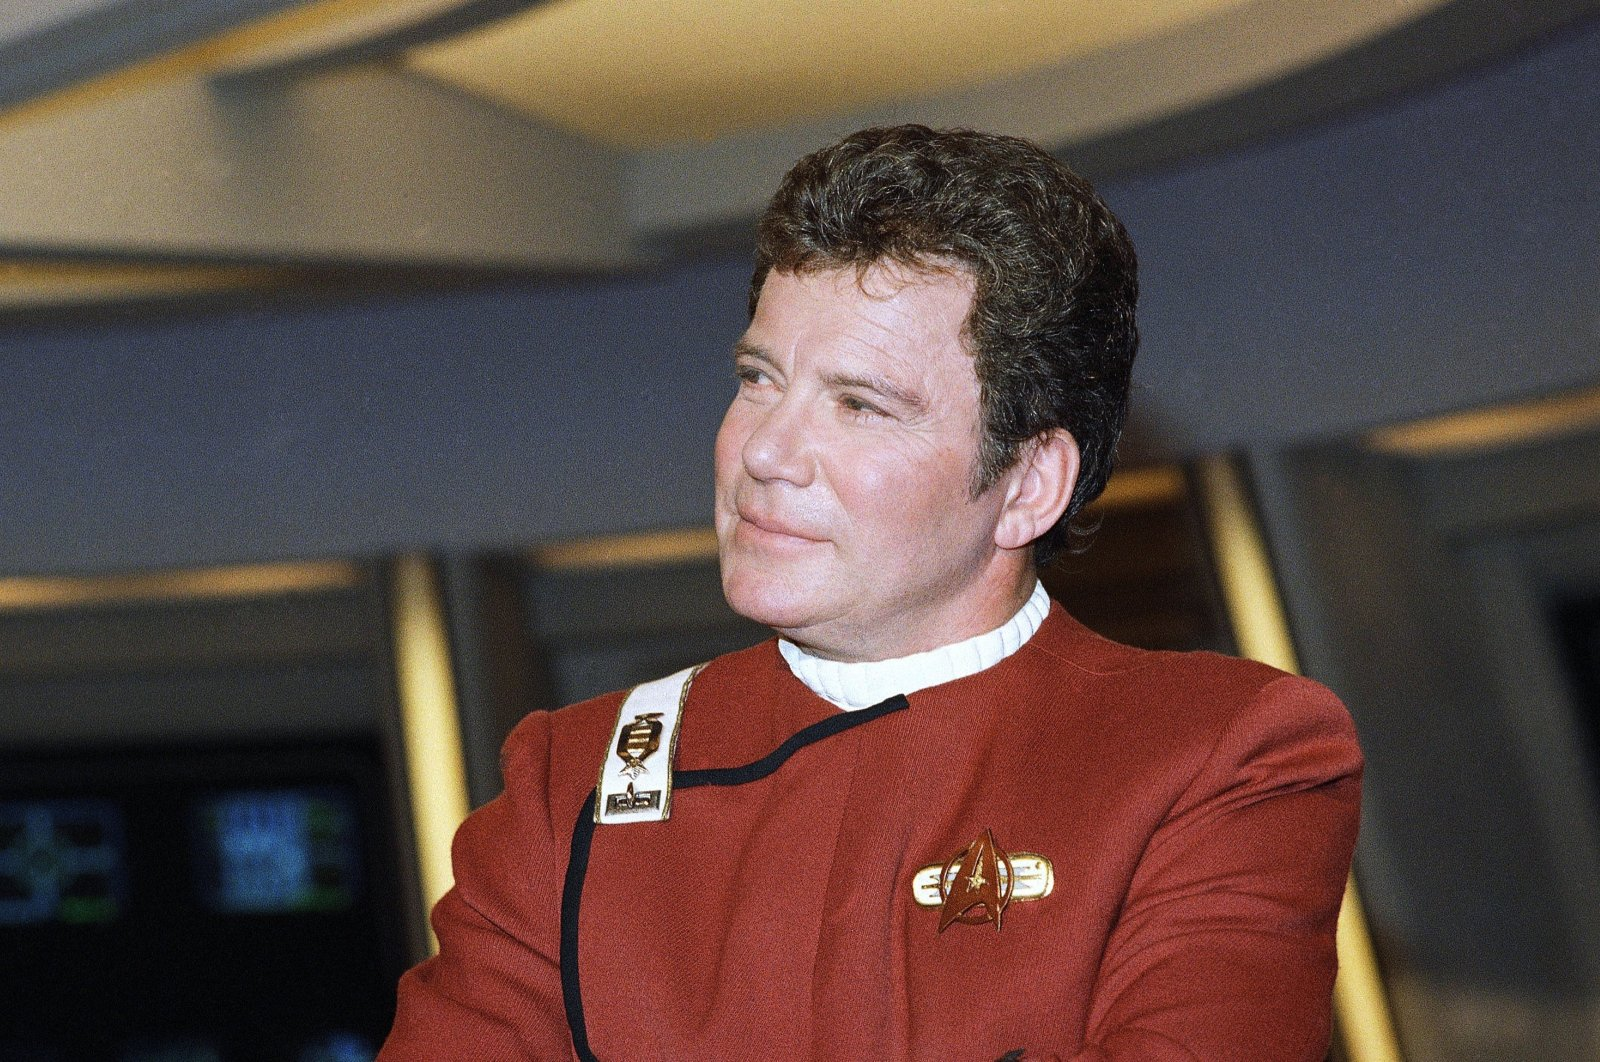 """In this 1988 file photo, William Shatner, who portrays Capt. James T. Kirk, attends a photo opportunity for the film """"Star Trek V: The Final Frontier."""" (AP File Photo)"""